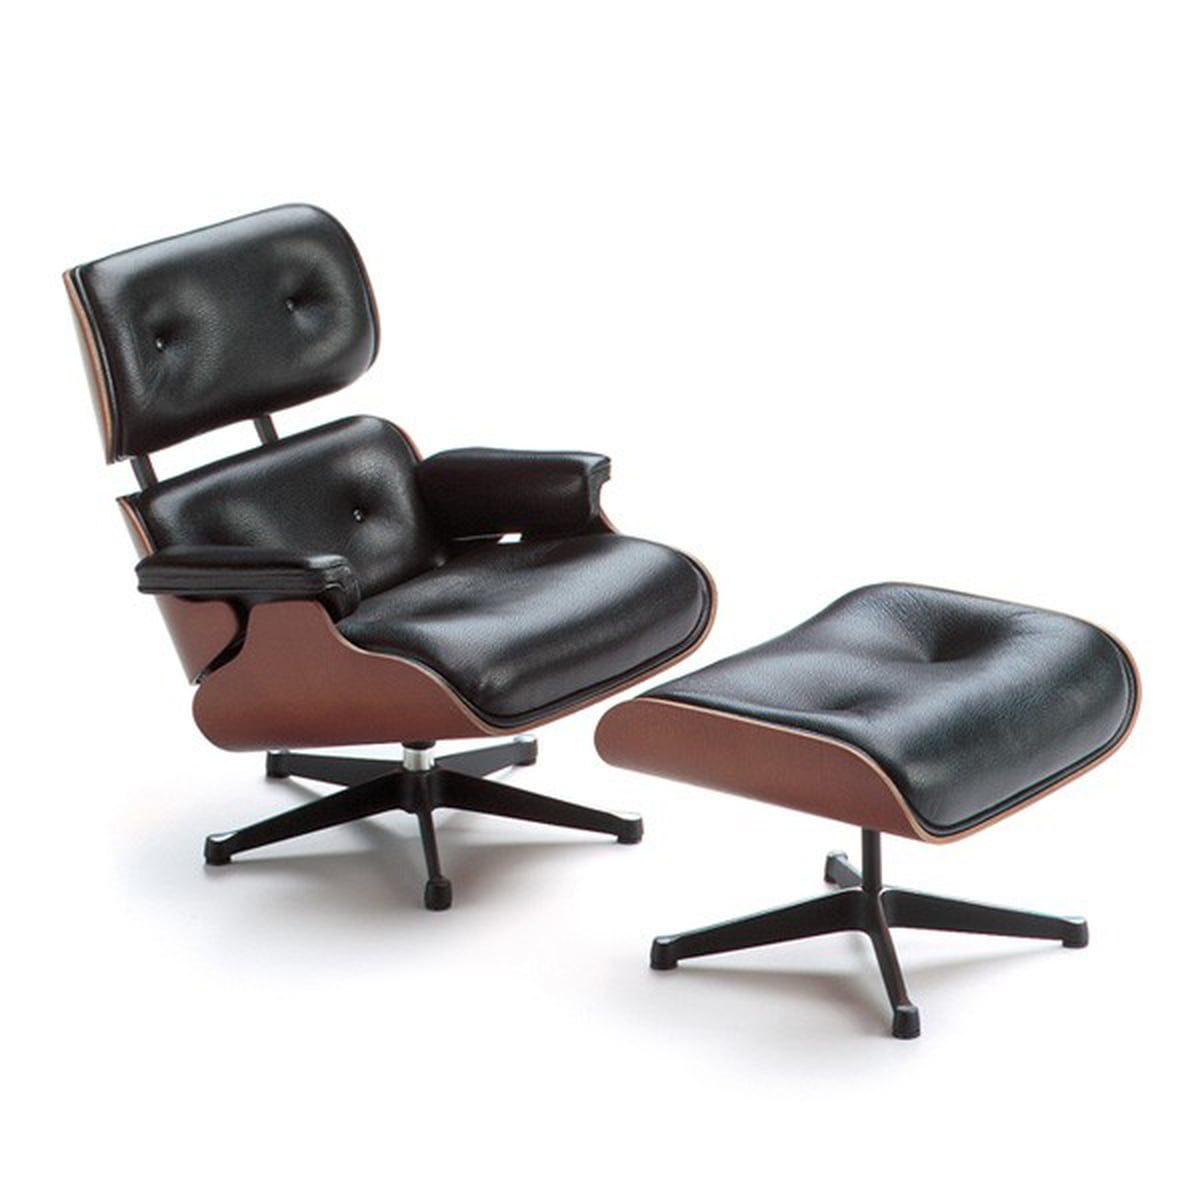 Miniature Lounge Chair Ottoman by Vitra